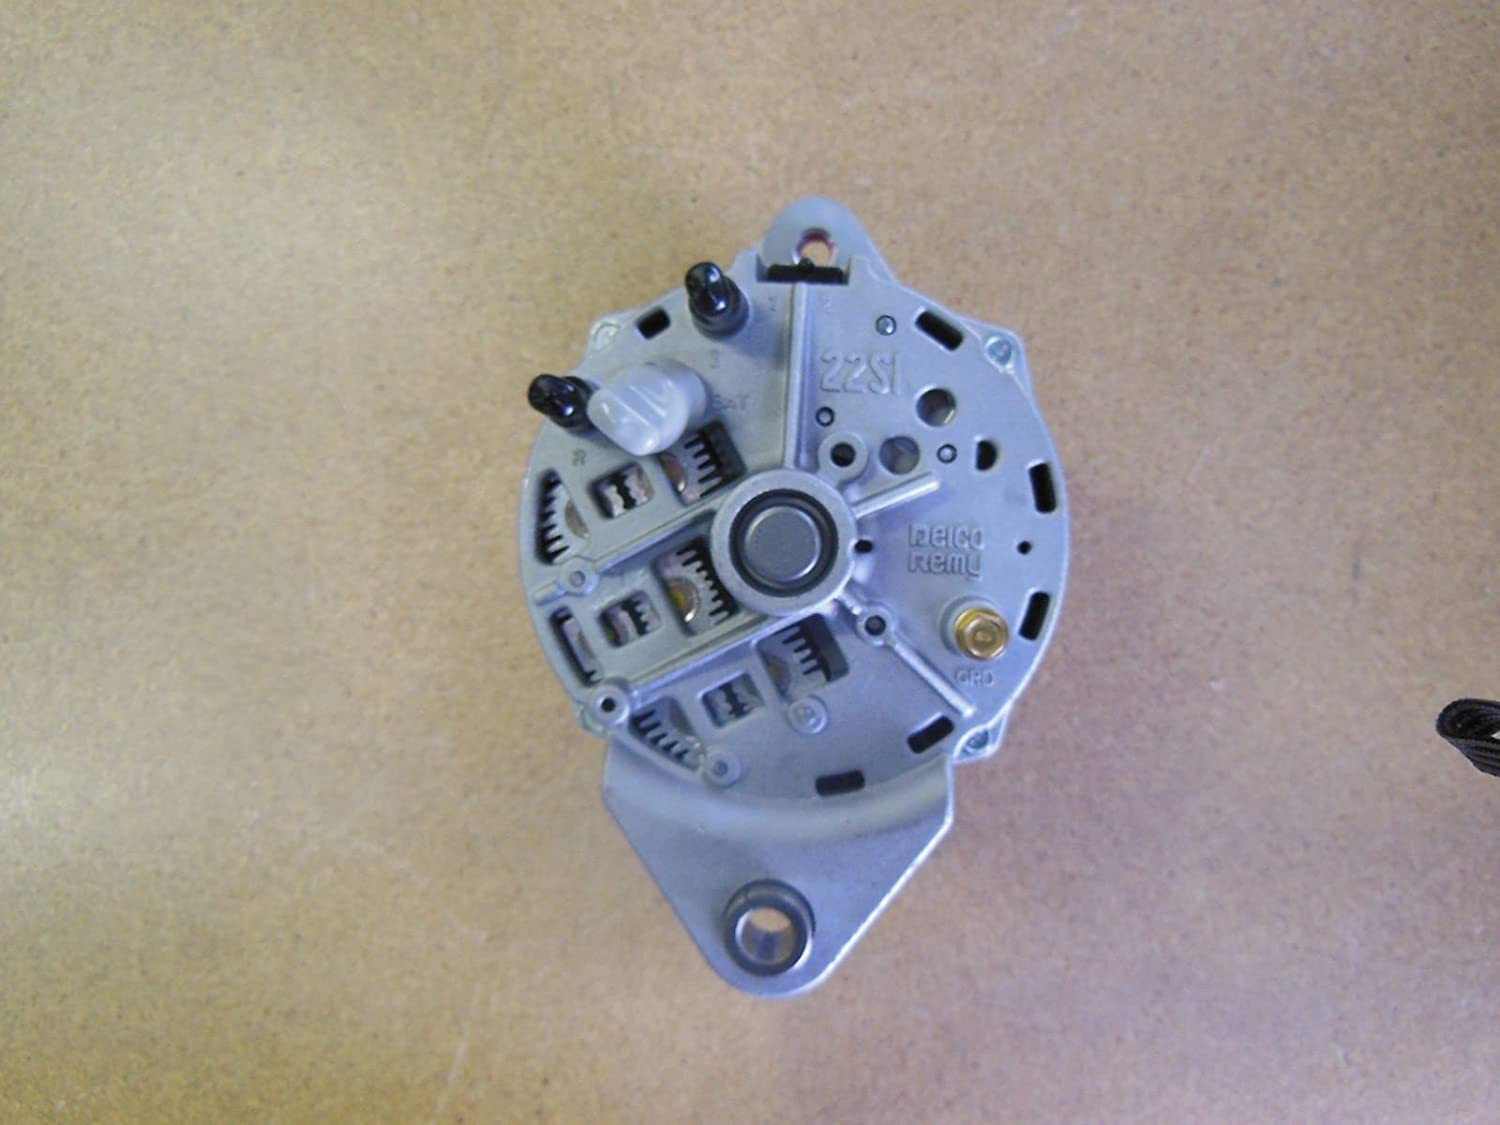 Original New Delco Remy 22si Heavy Duty Alternator Truck How To Wire A Ac 10 19020310 150 Amp 22 Si Automotive